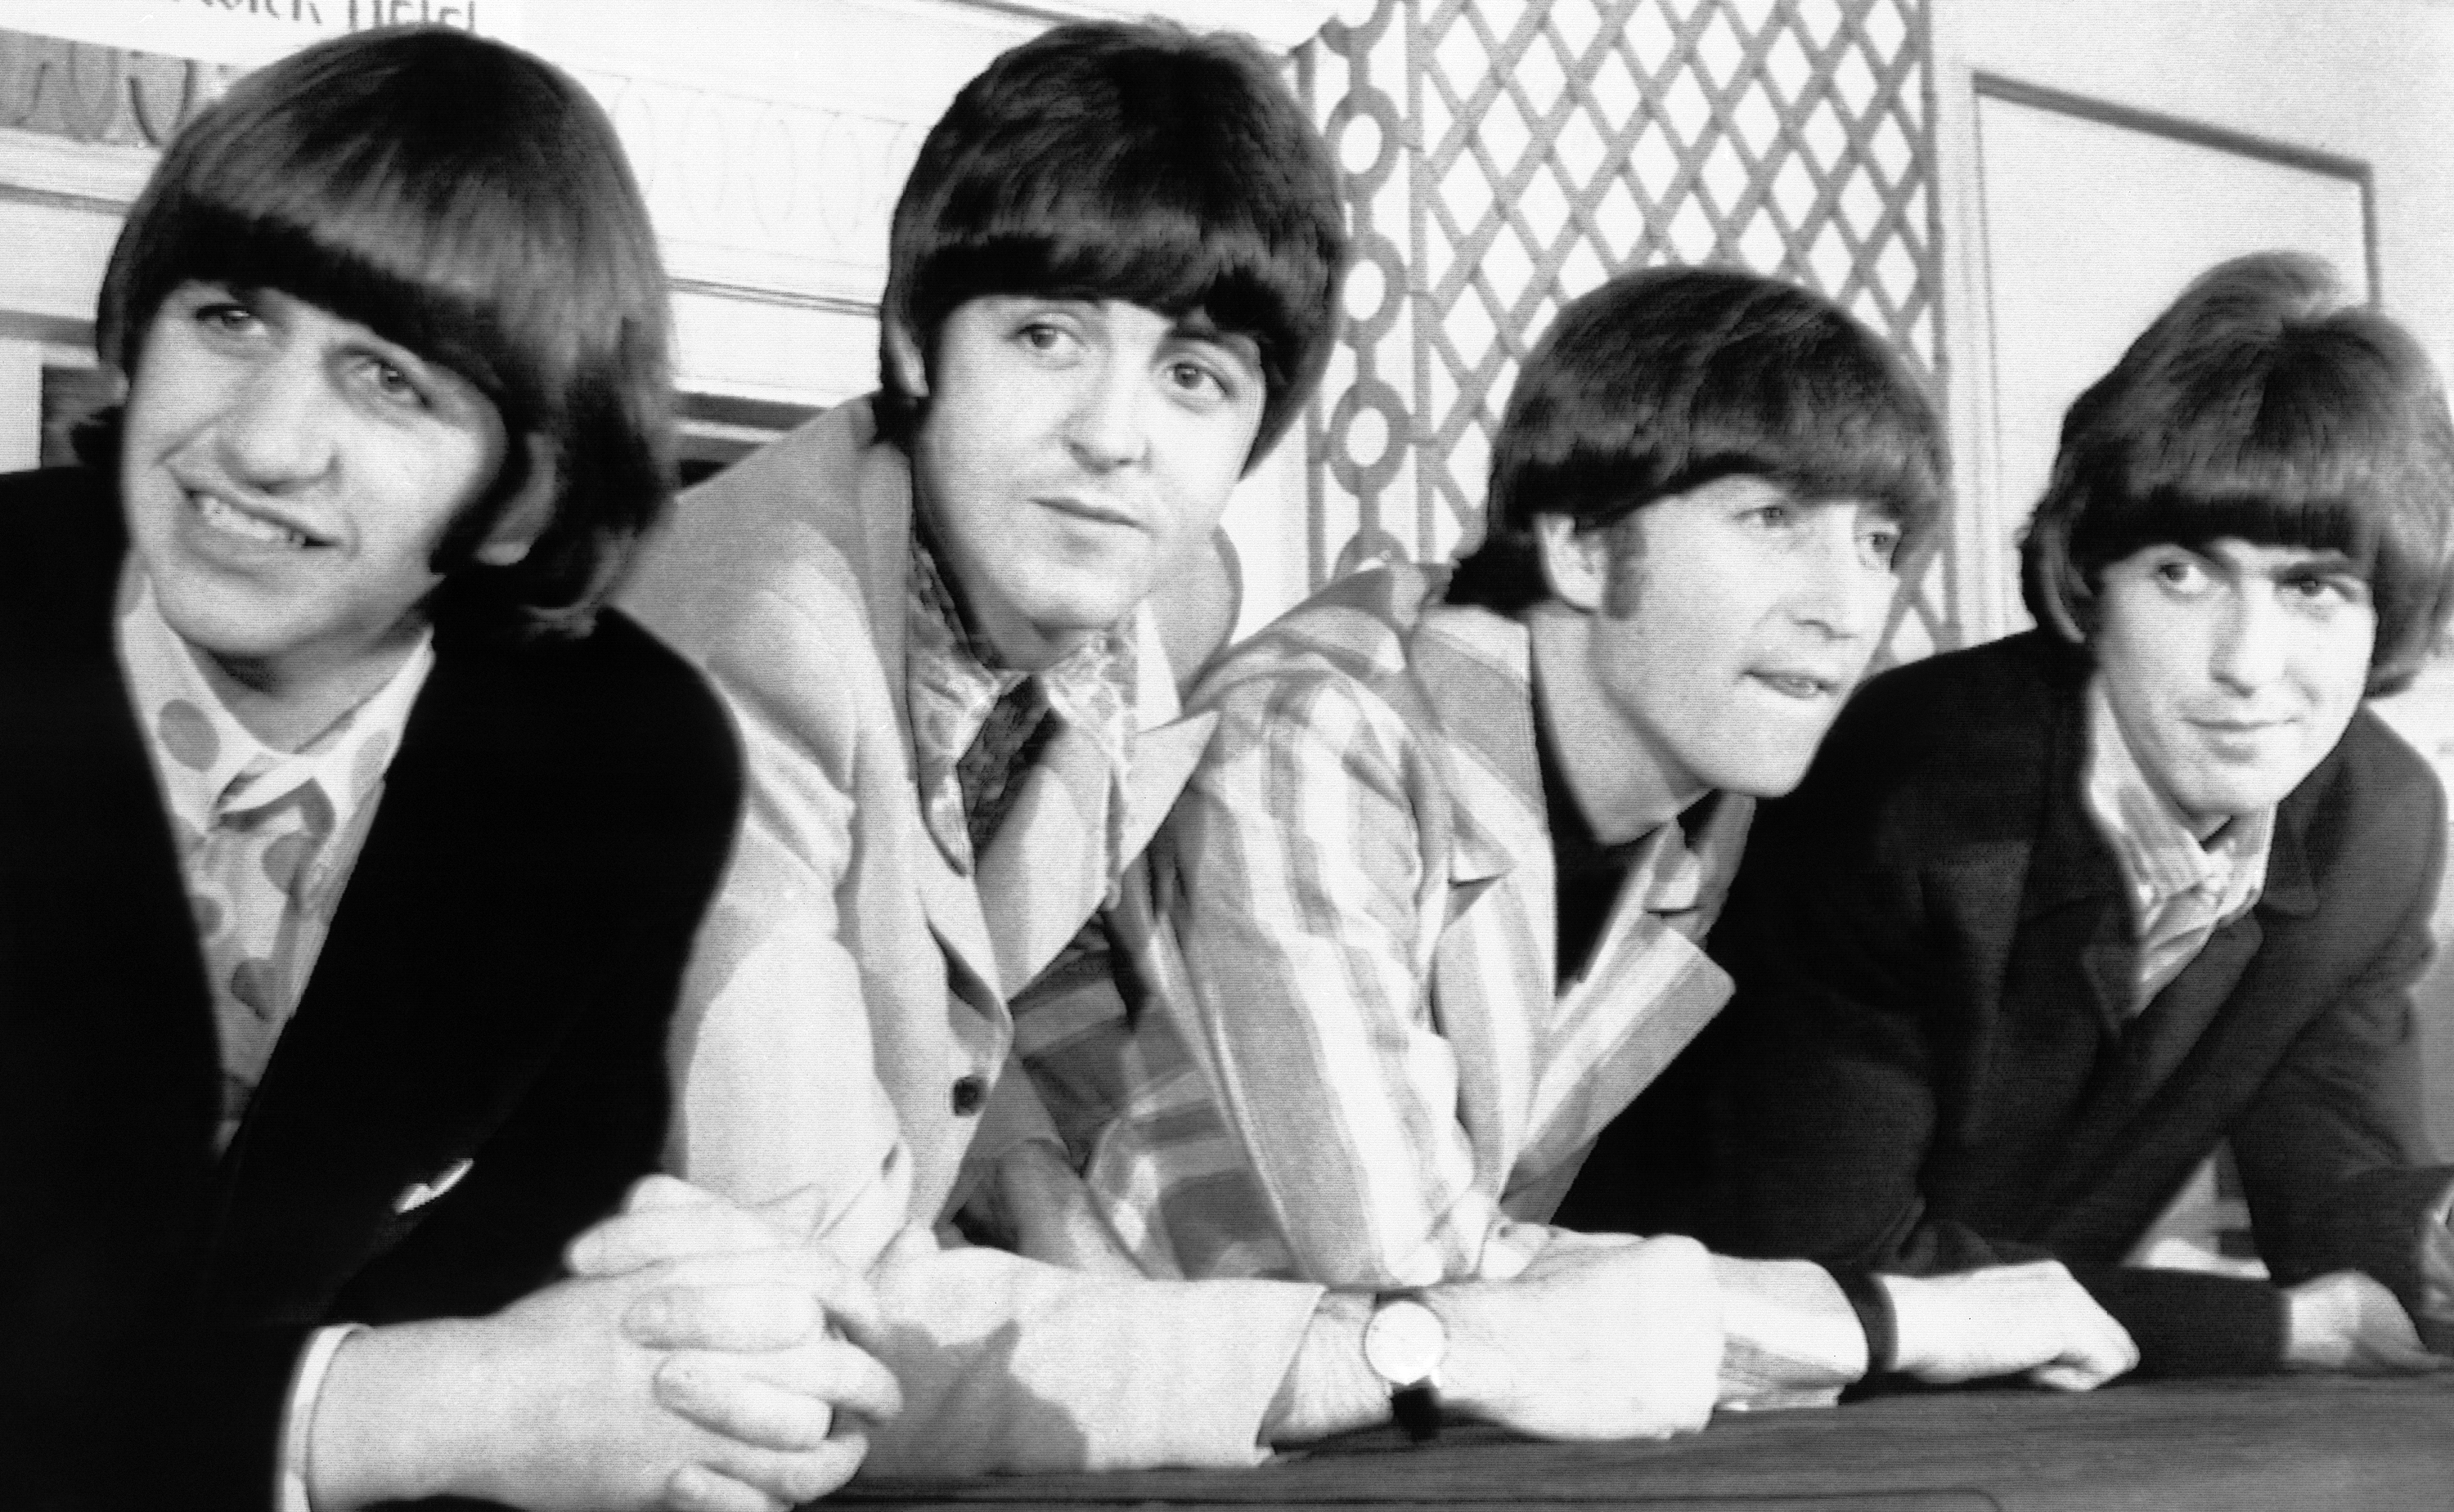 The Famous Beatles Haircut Was Actually Inspired From Young German Men At That Time